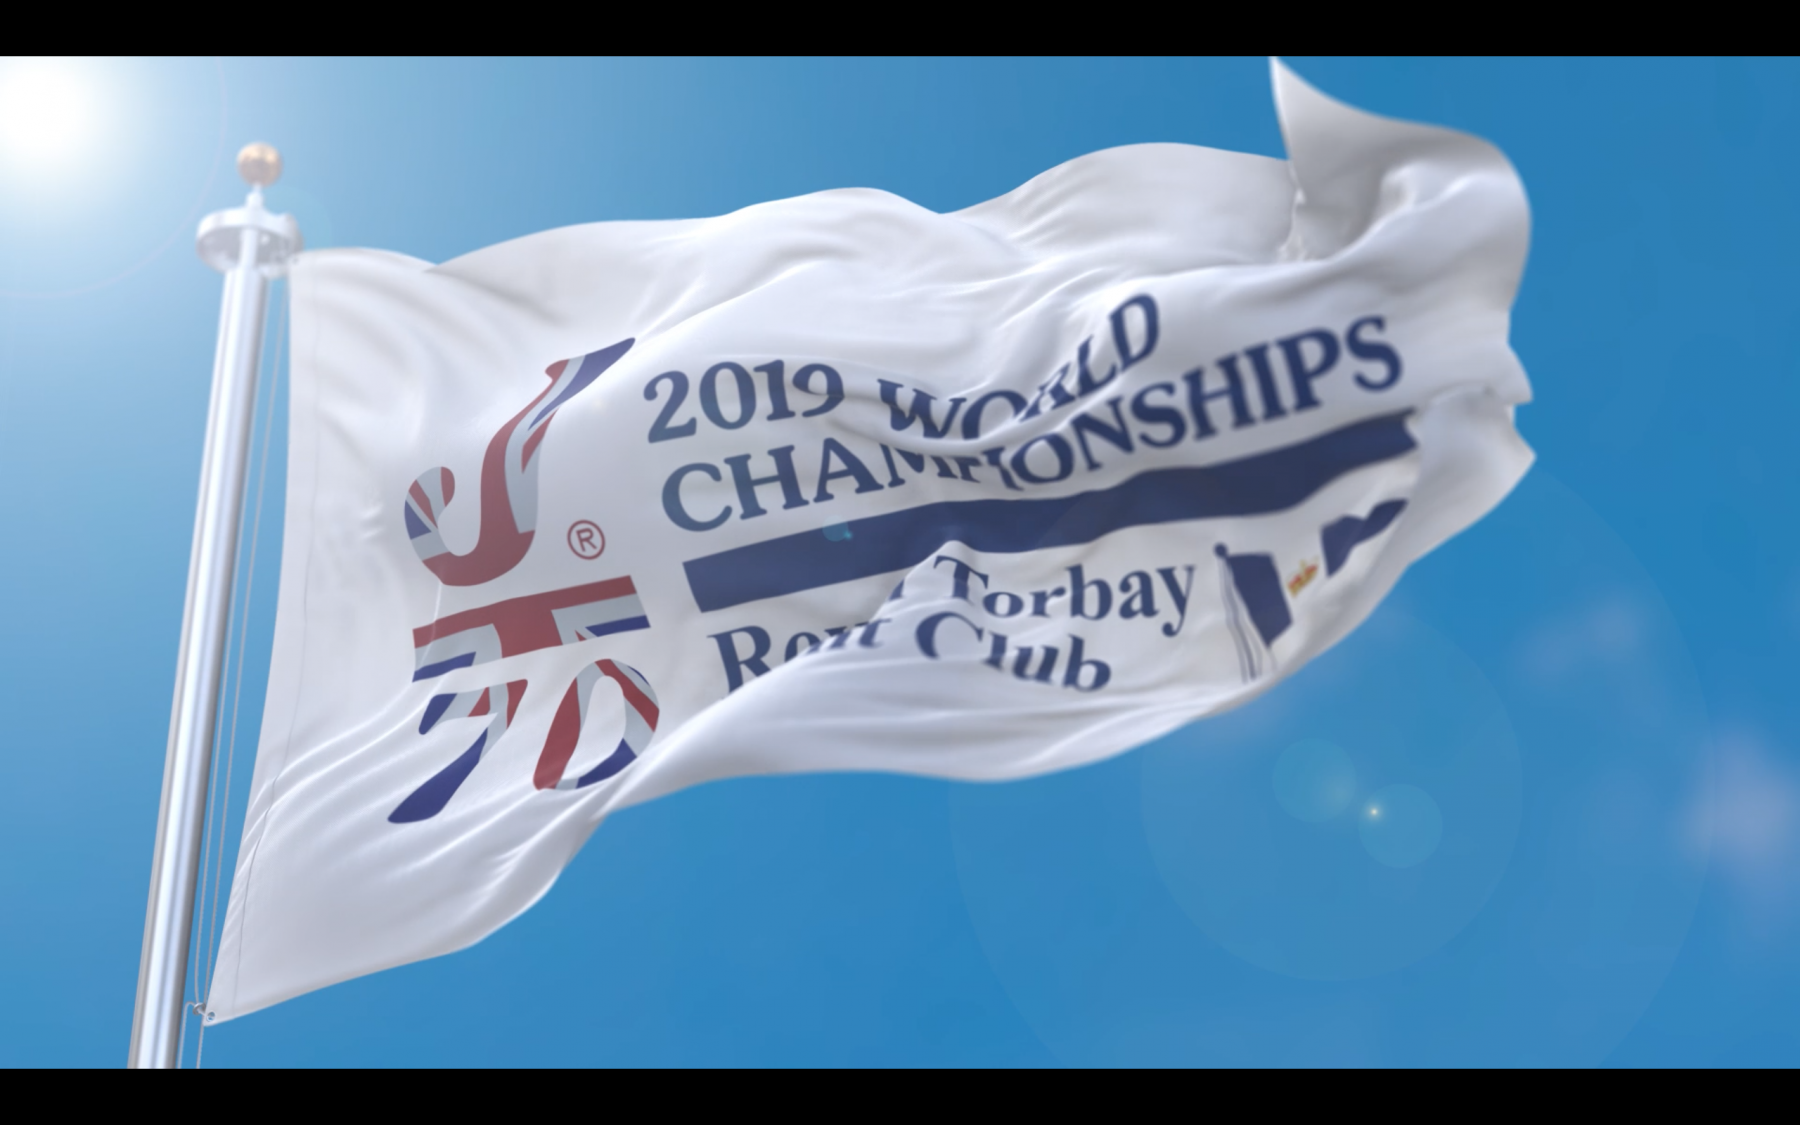 J/70 World Championships 2019 Promotional Video